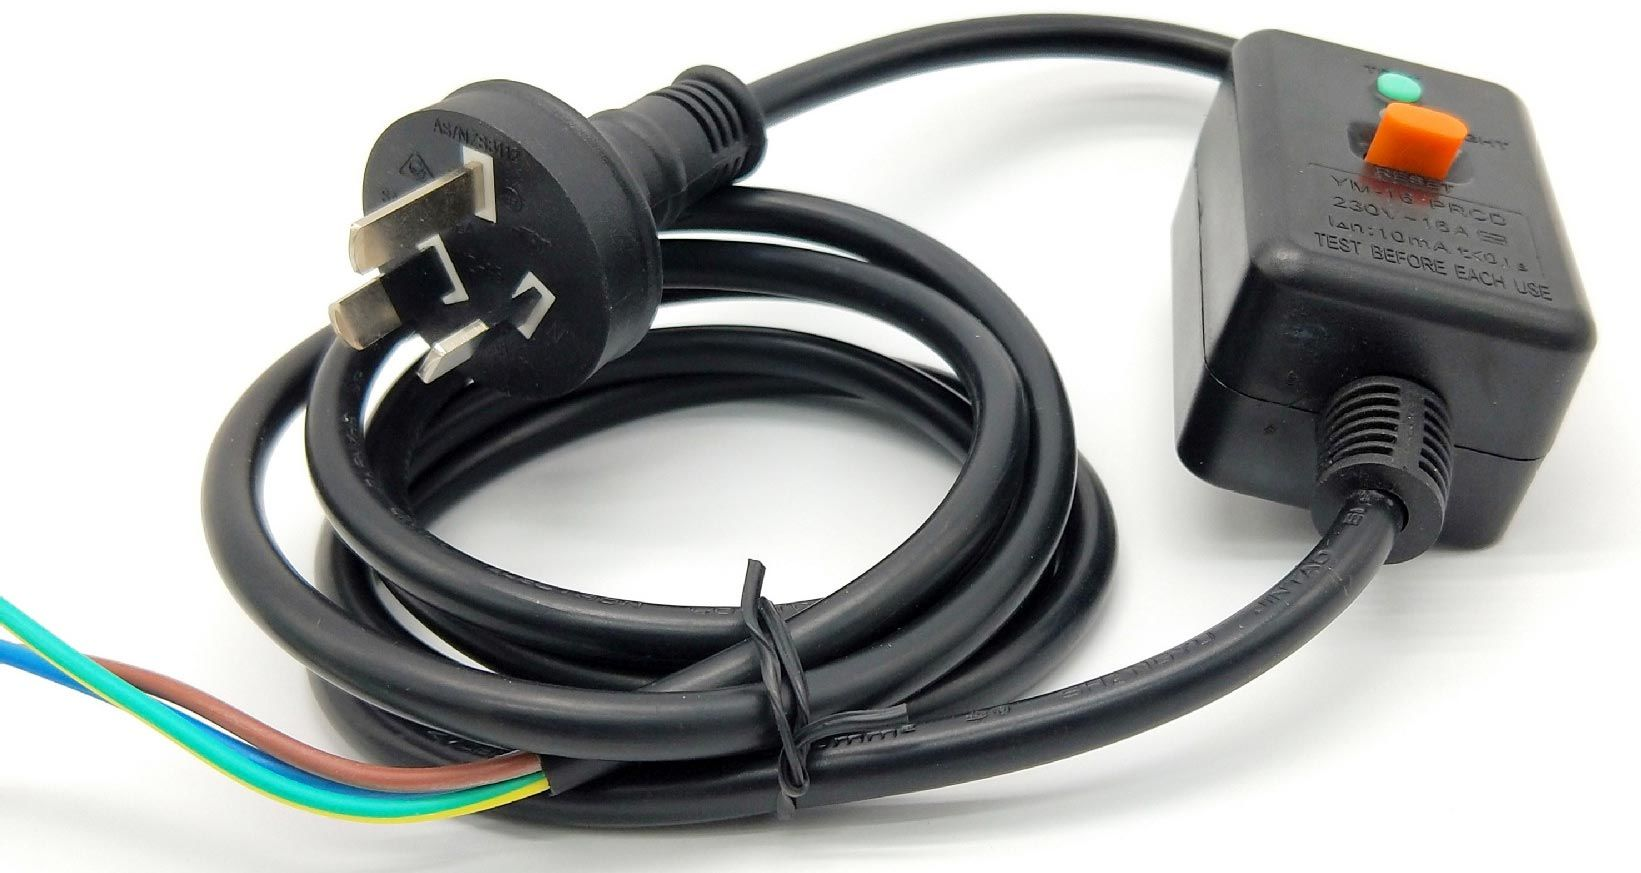 Wiring Power Plug Australia Ac Cords Supply Cord Mains With Gfci